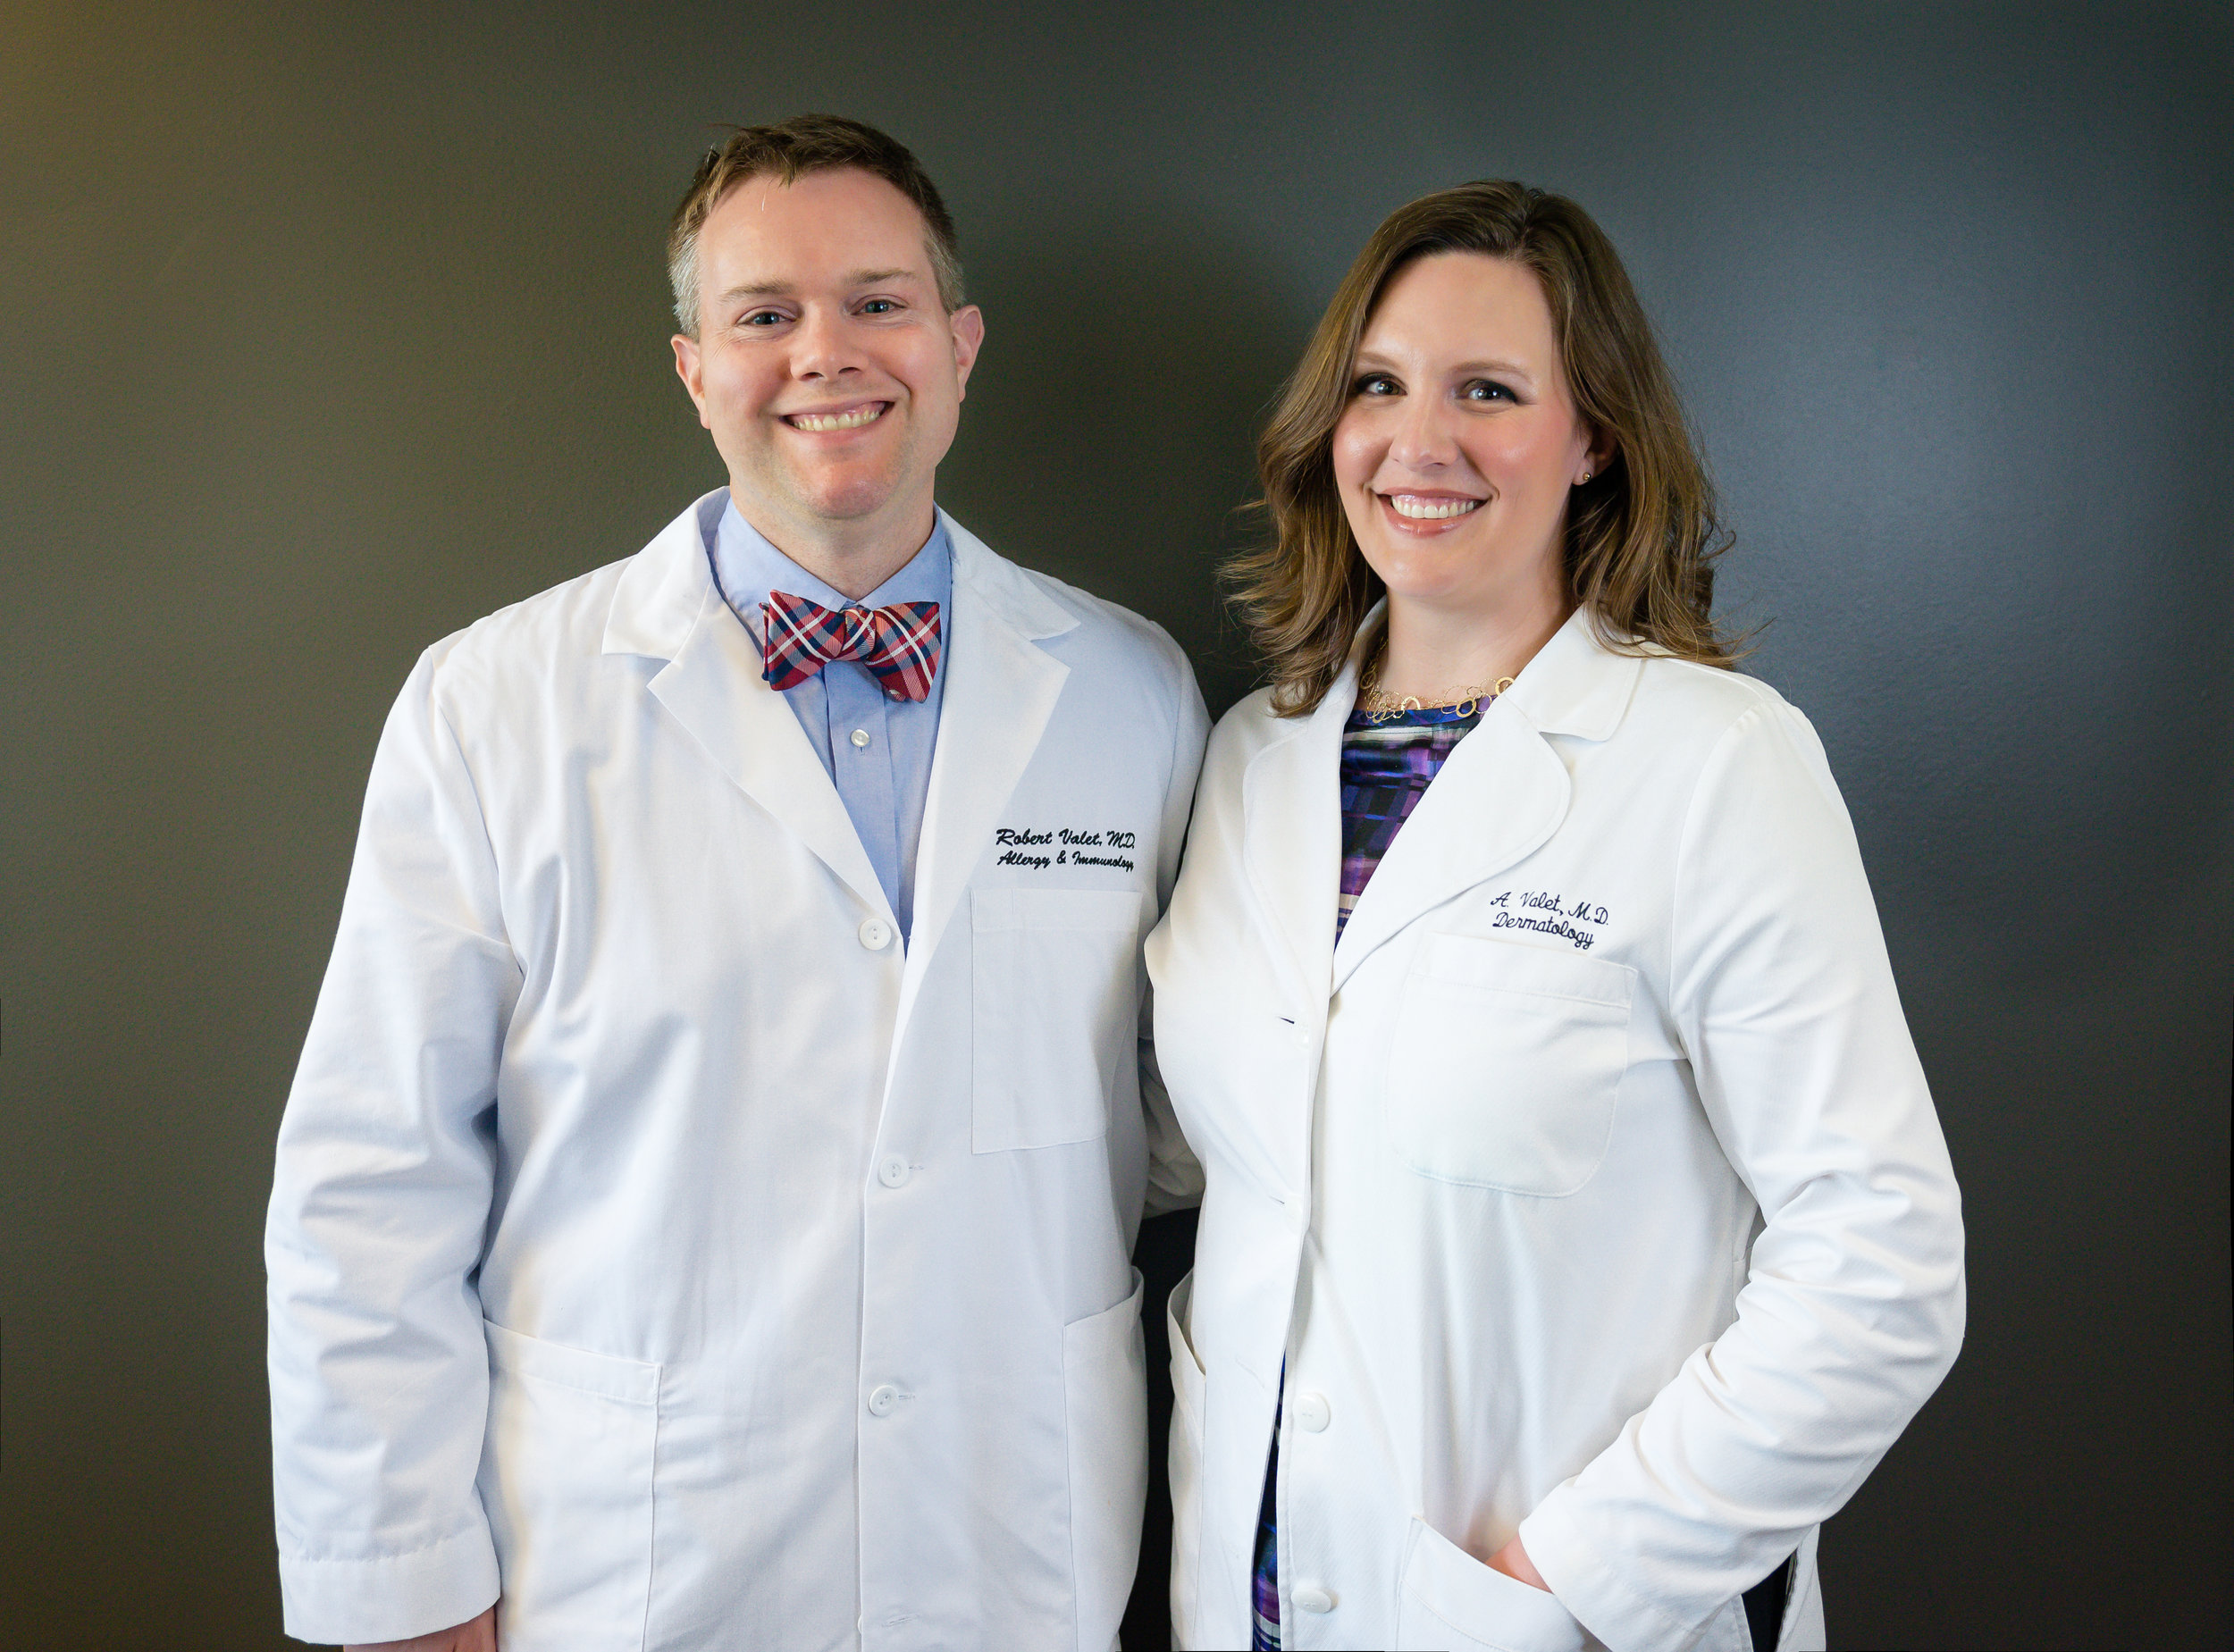 Traceside-Dermatology-and-Allergy-Nashville-Doctor-Robert-Amy-Valet-by-Weatherly-Photography-170516-WRH_2564.jpg